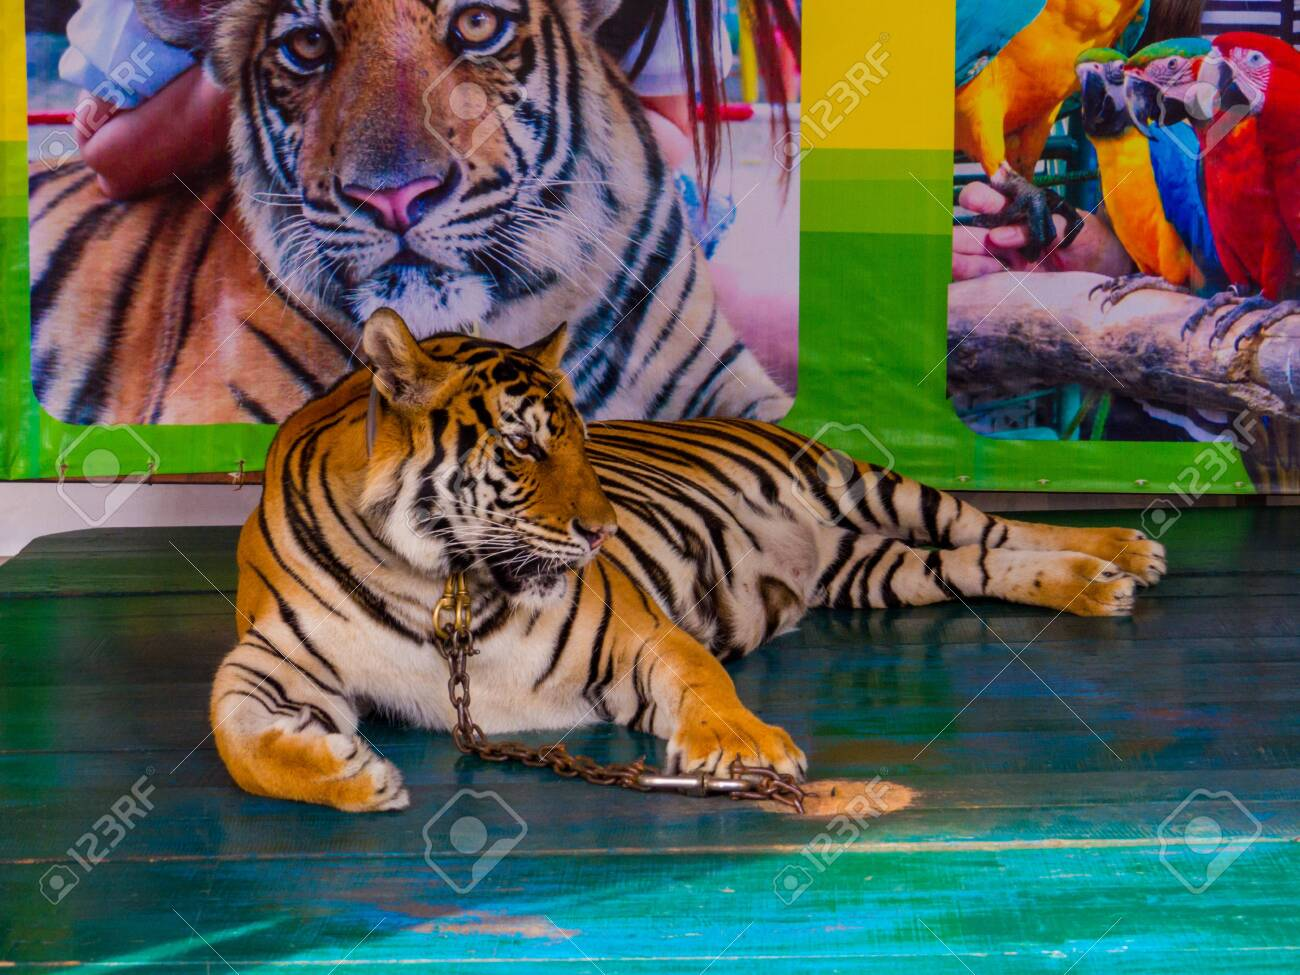 PATTAYA, THAILAND - JANUARY 2, 2019: Tiger in chain for photo with tourists in Nong Nooch Tropical Botanical Garden. - 151821164